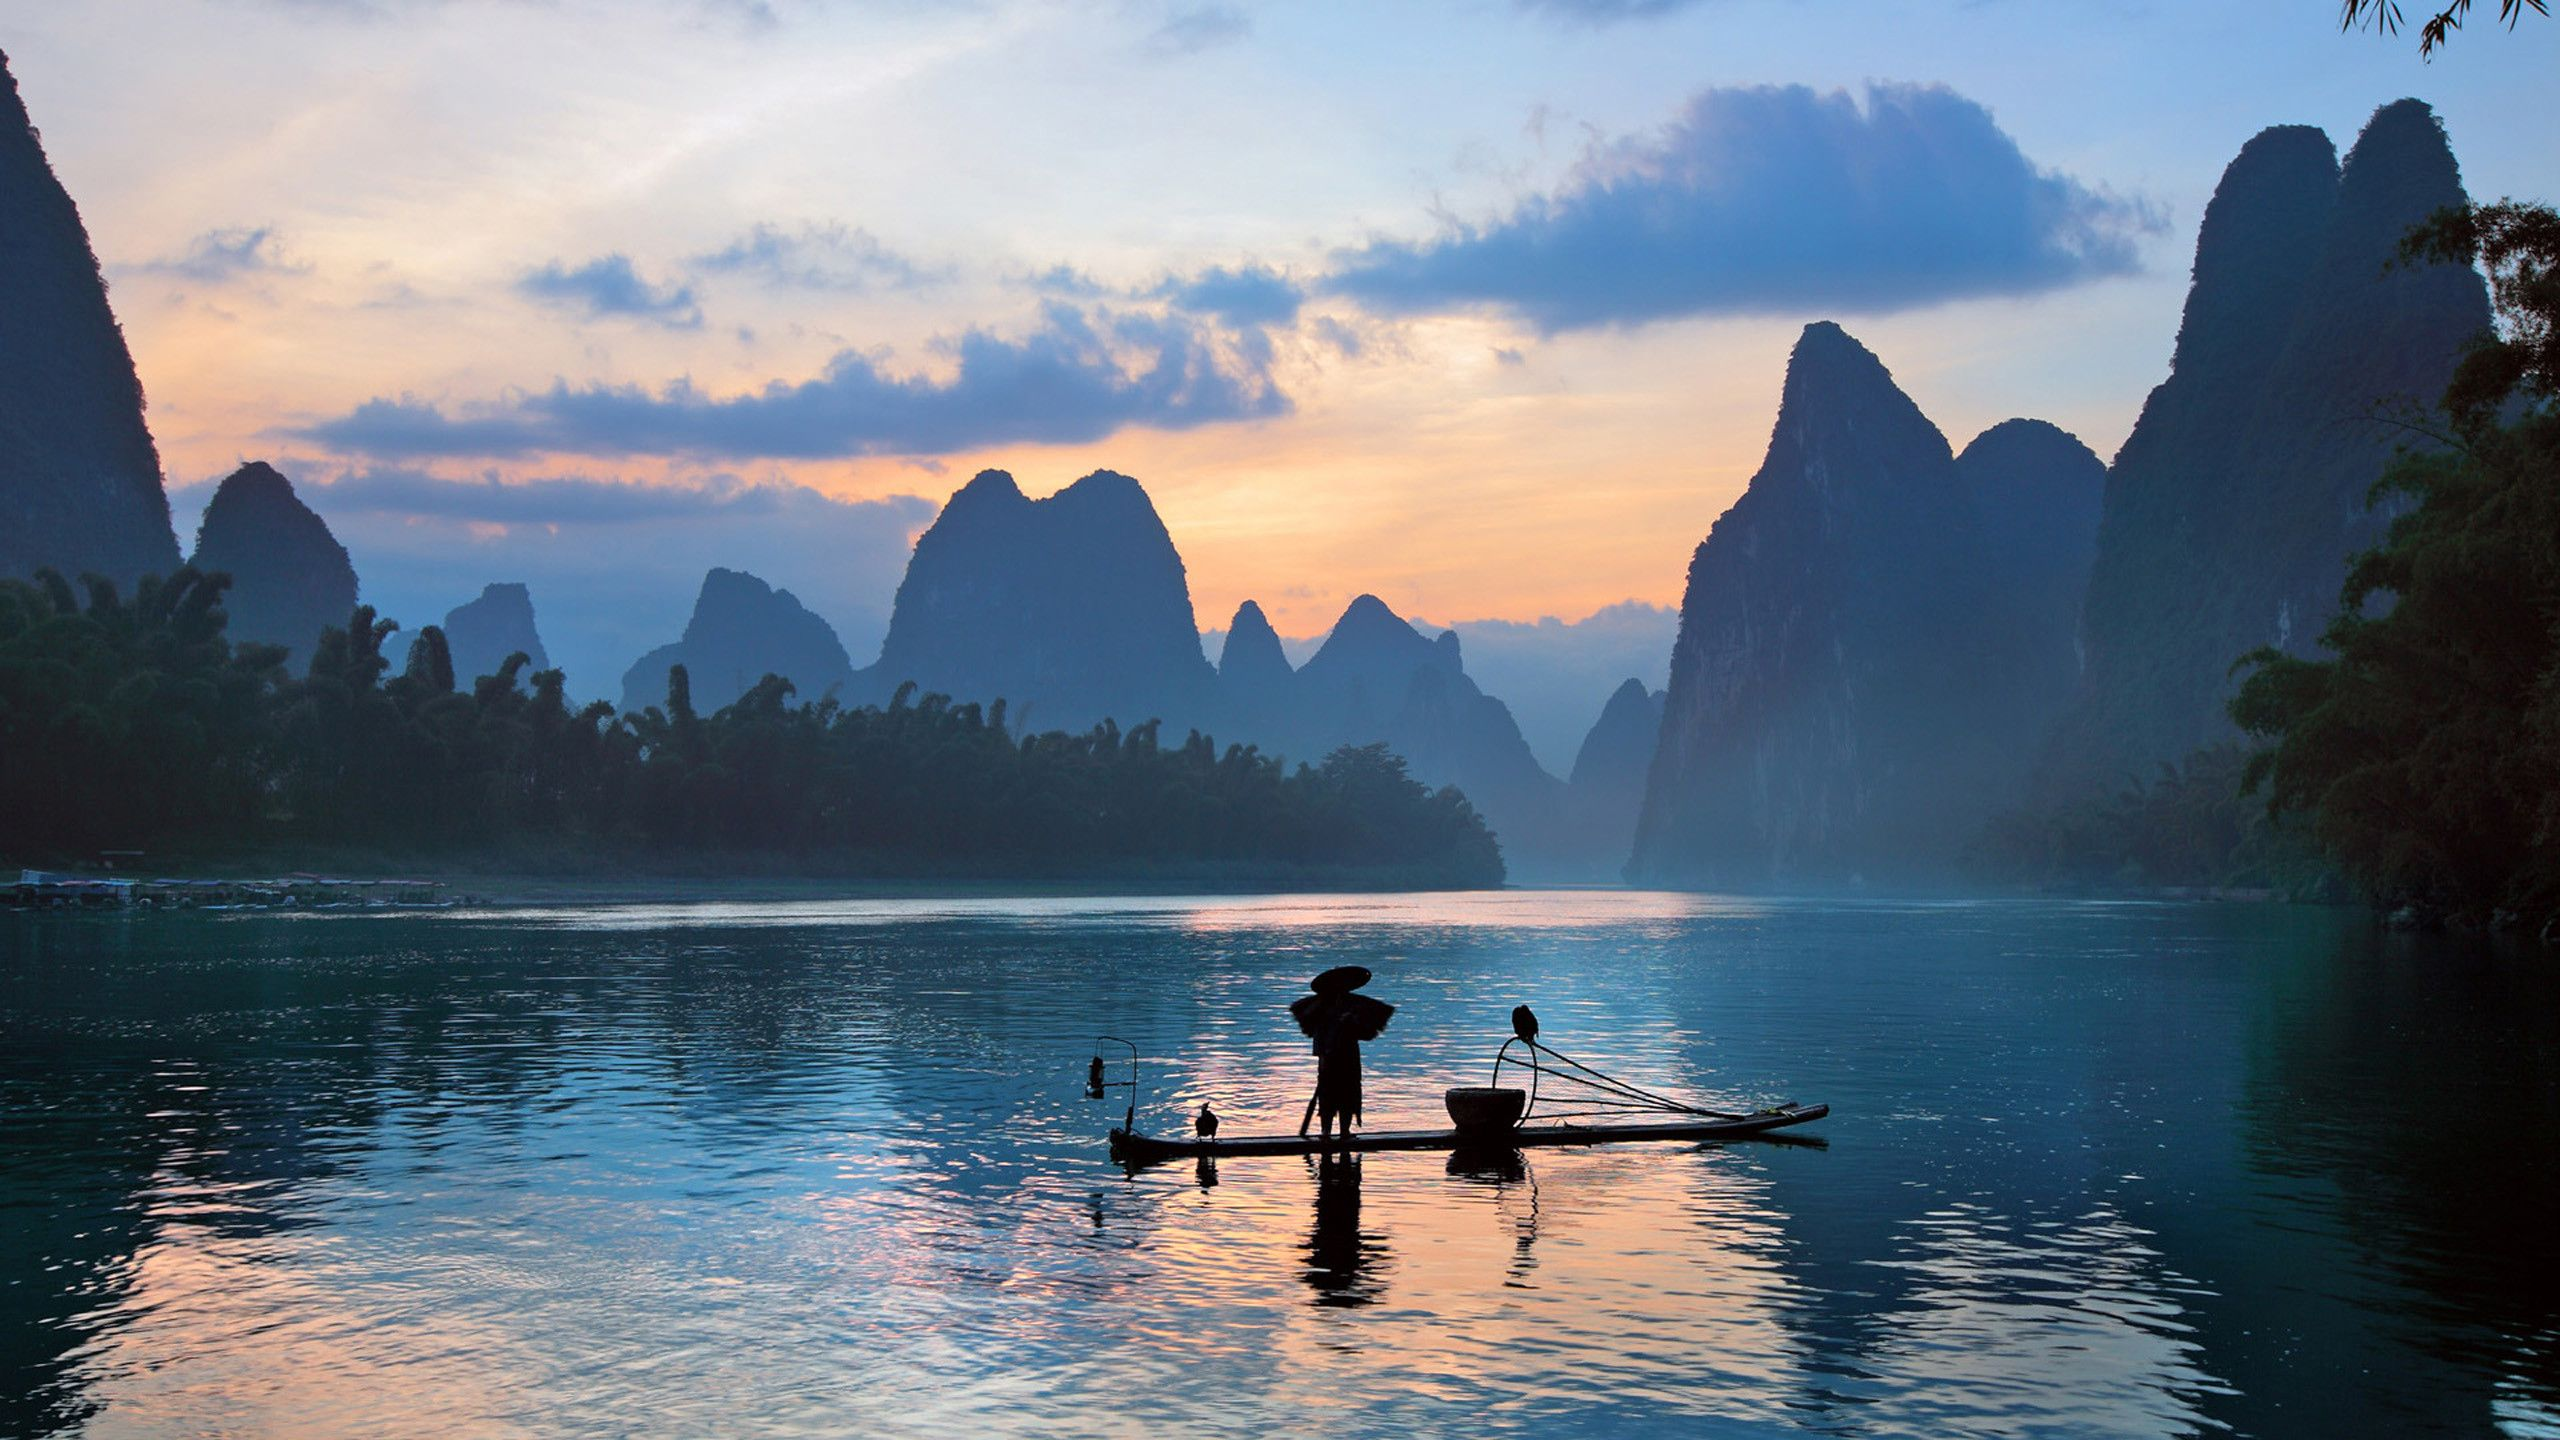 China Scenery Wallpapers Top Free China Scenery Backgrounds Wallpaperaccess